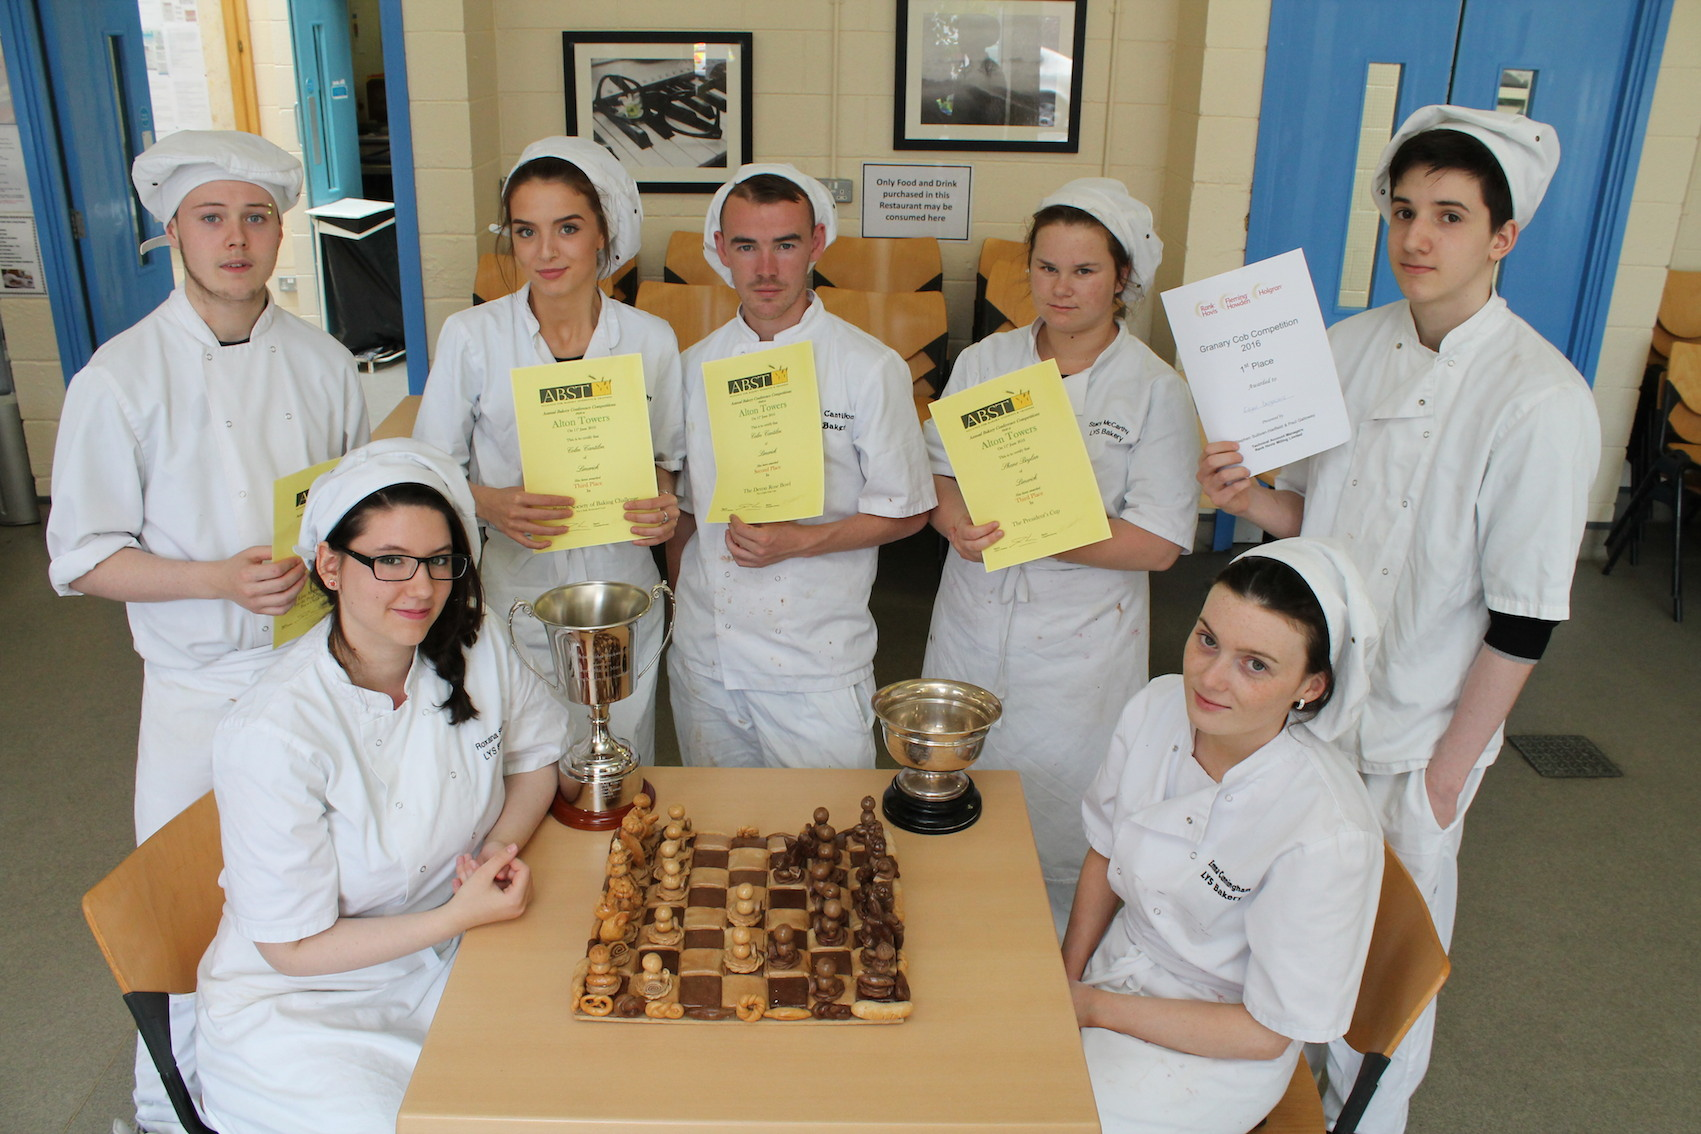 Limerick Youth Service Bakery Project